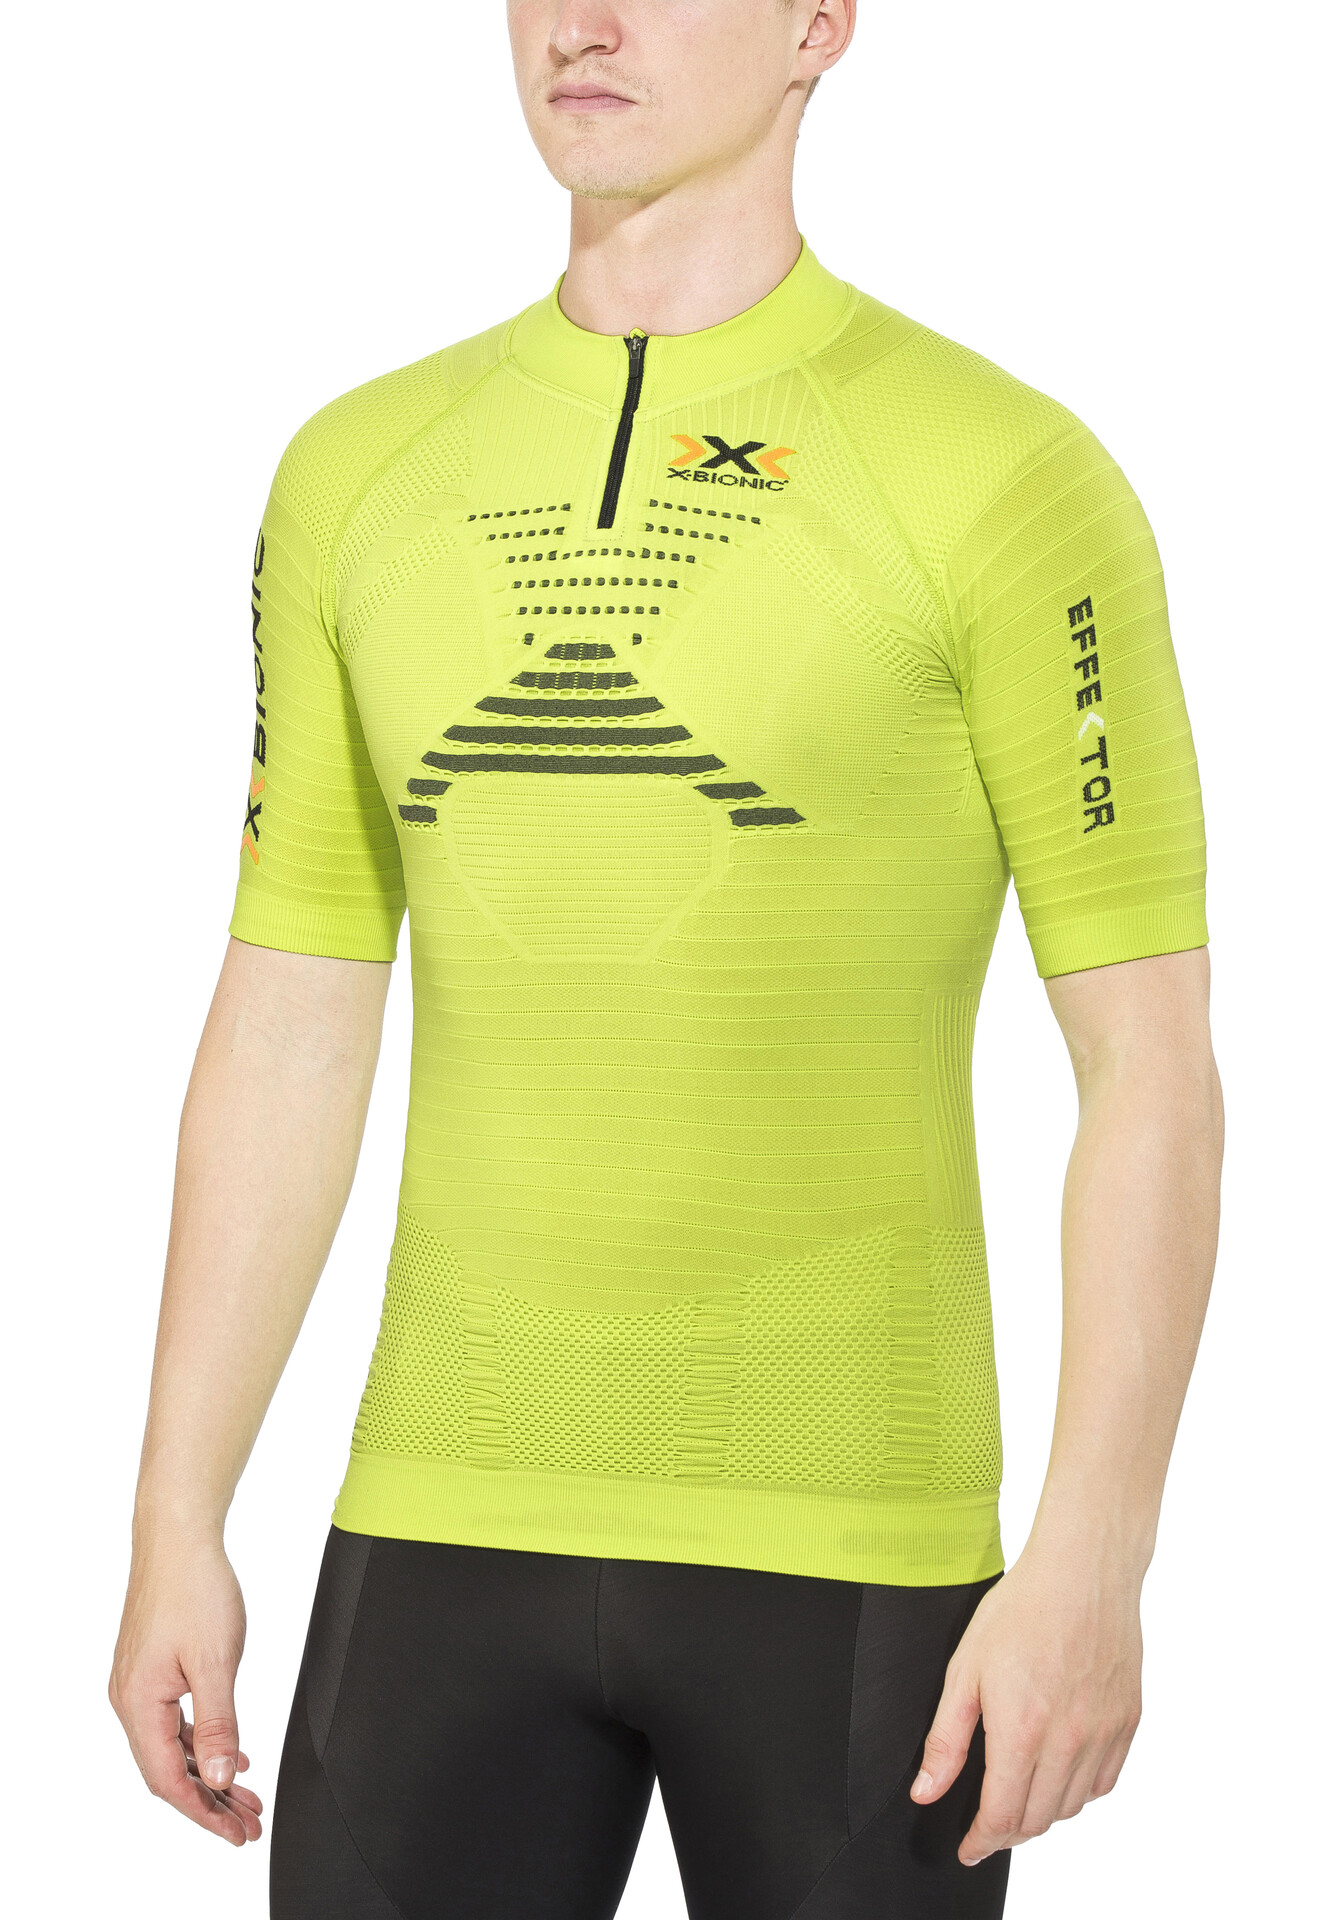 1531da79904f1 20+ Lime Green Compression Shorts Pictures and Ideas on STEM ...